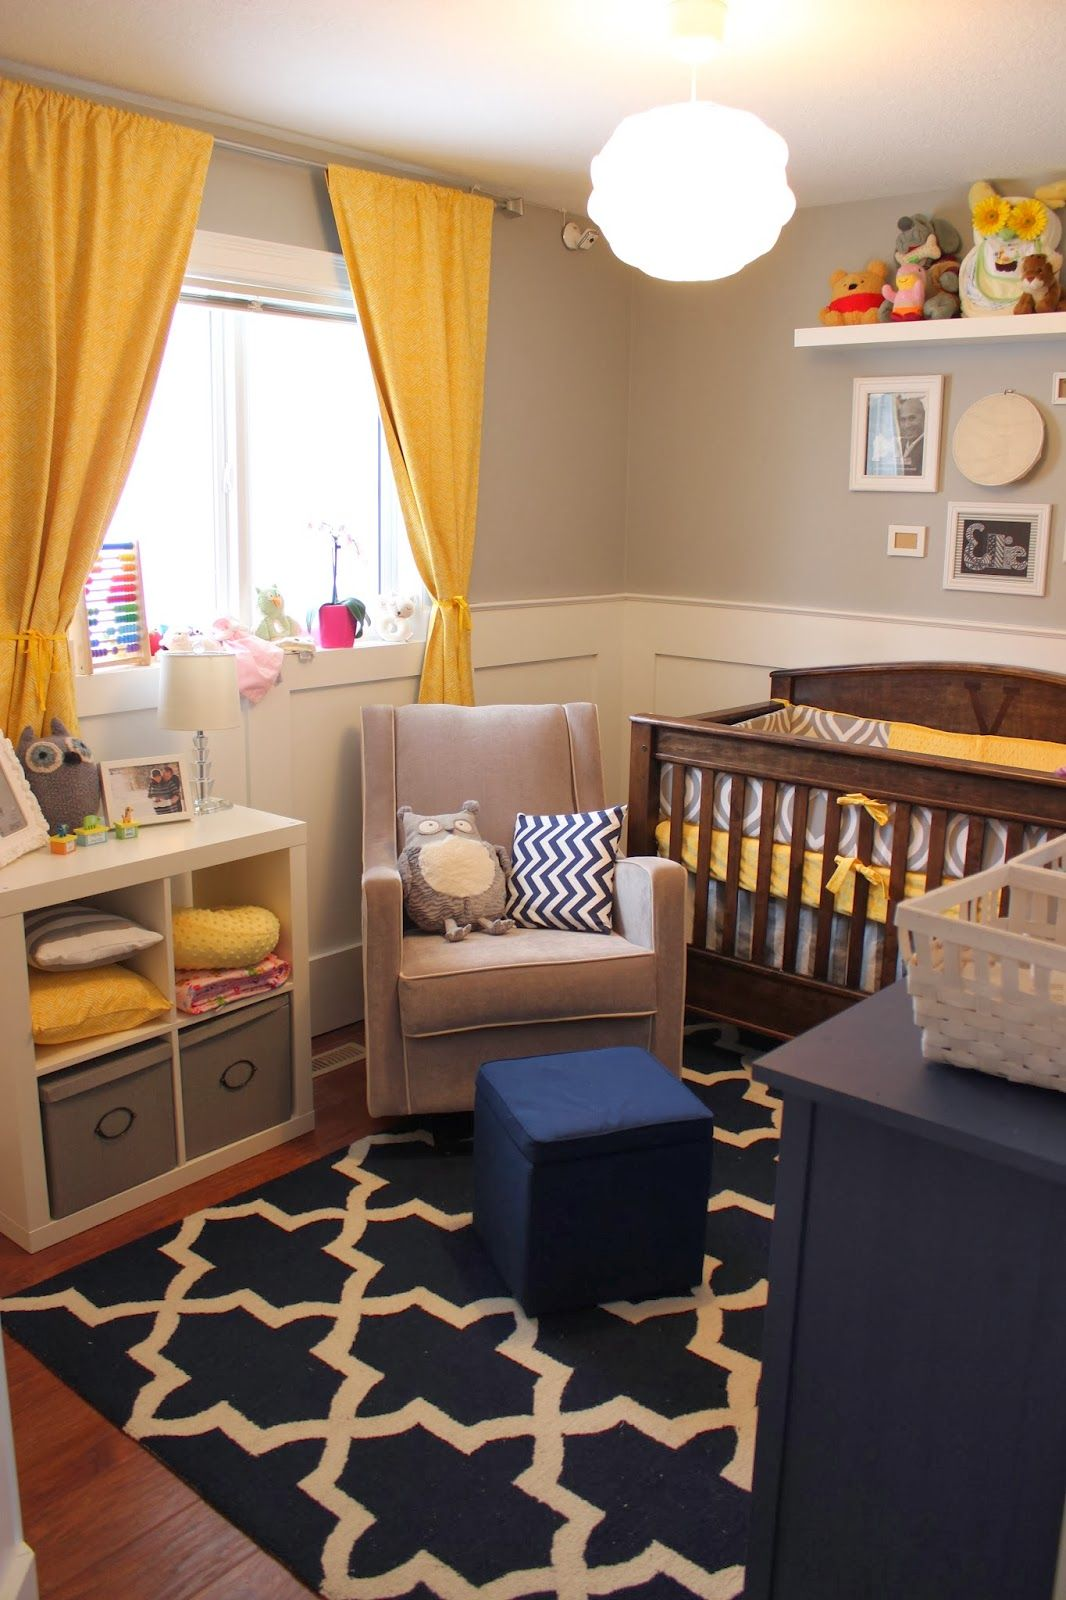 Baby Boy Room Design Pictures: Not A Fan Of The Decor But This Is The Same Floorplan Of